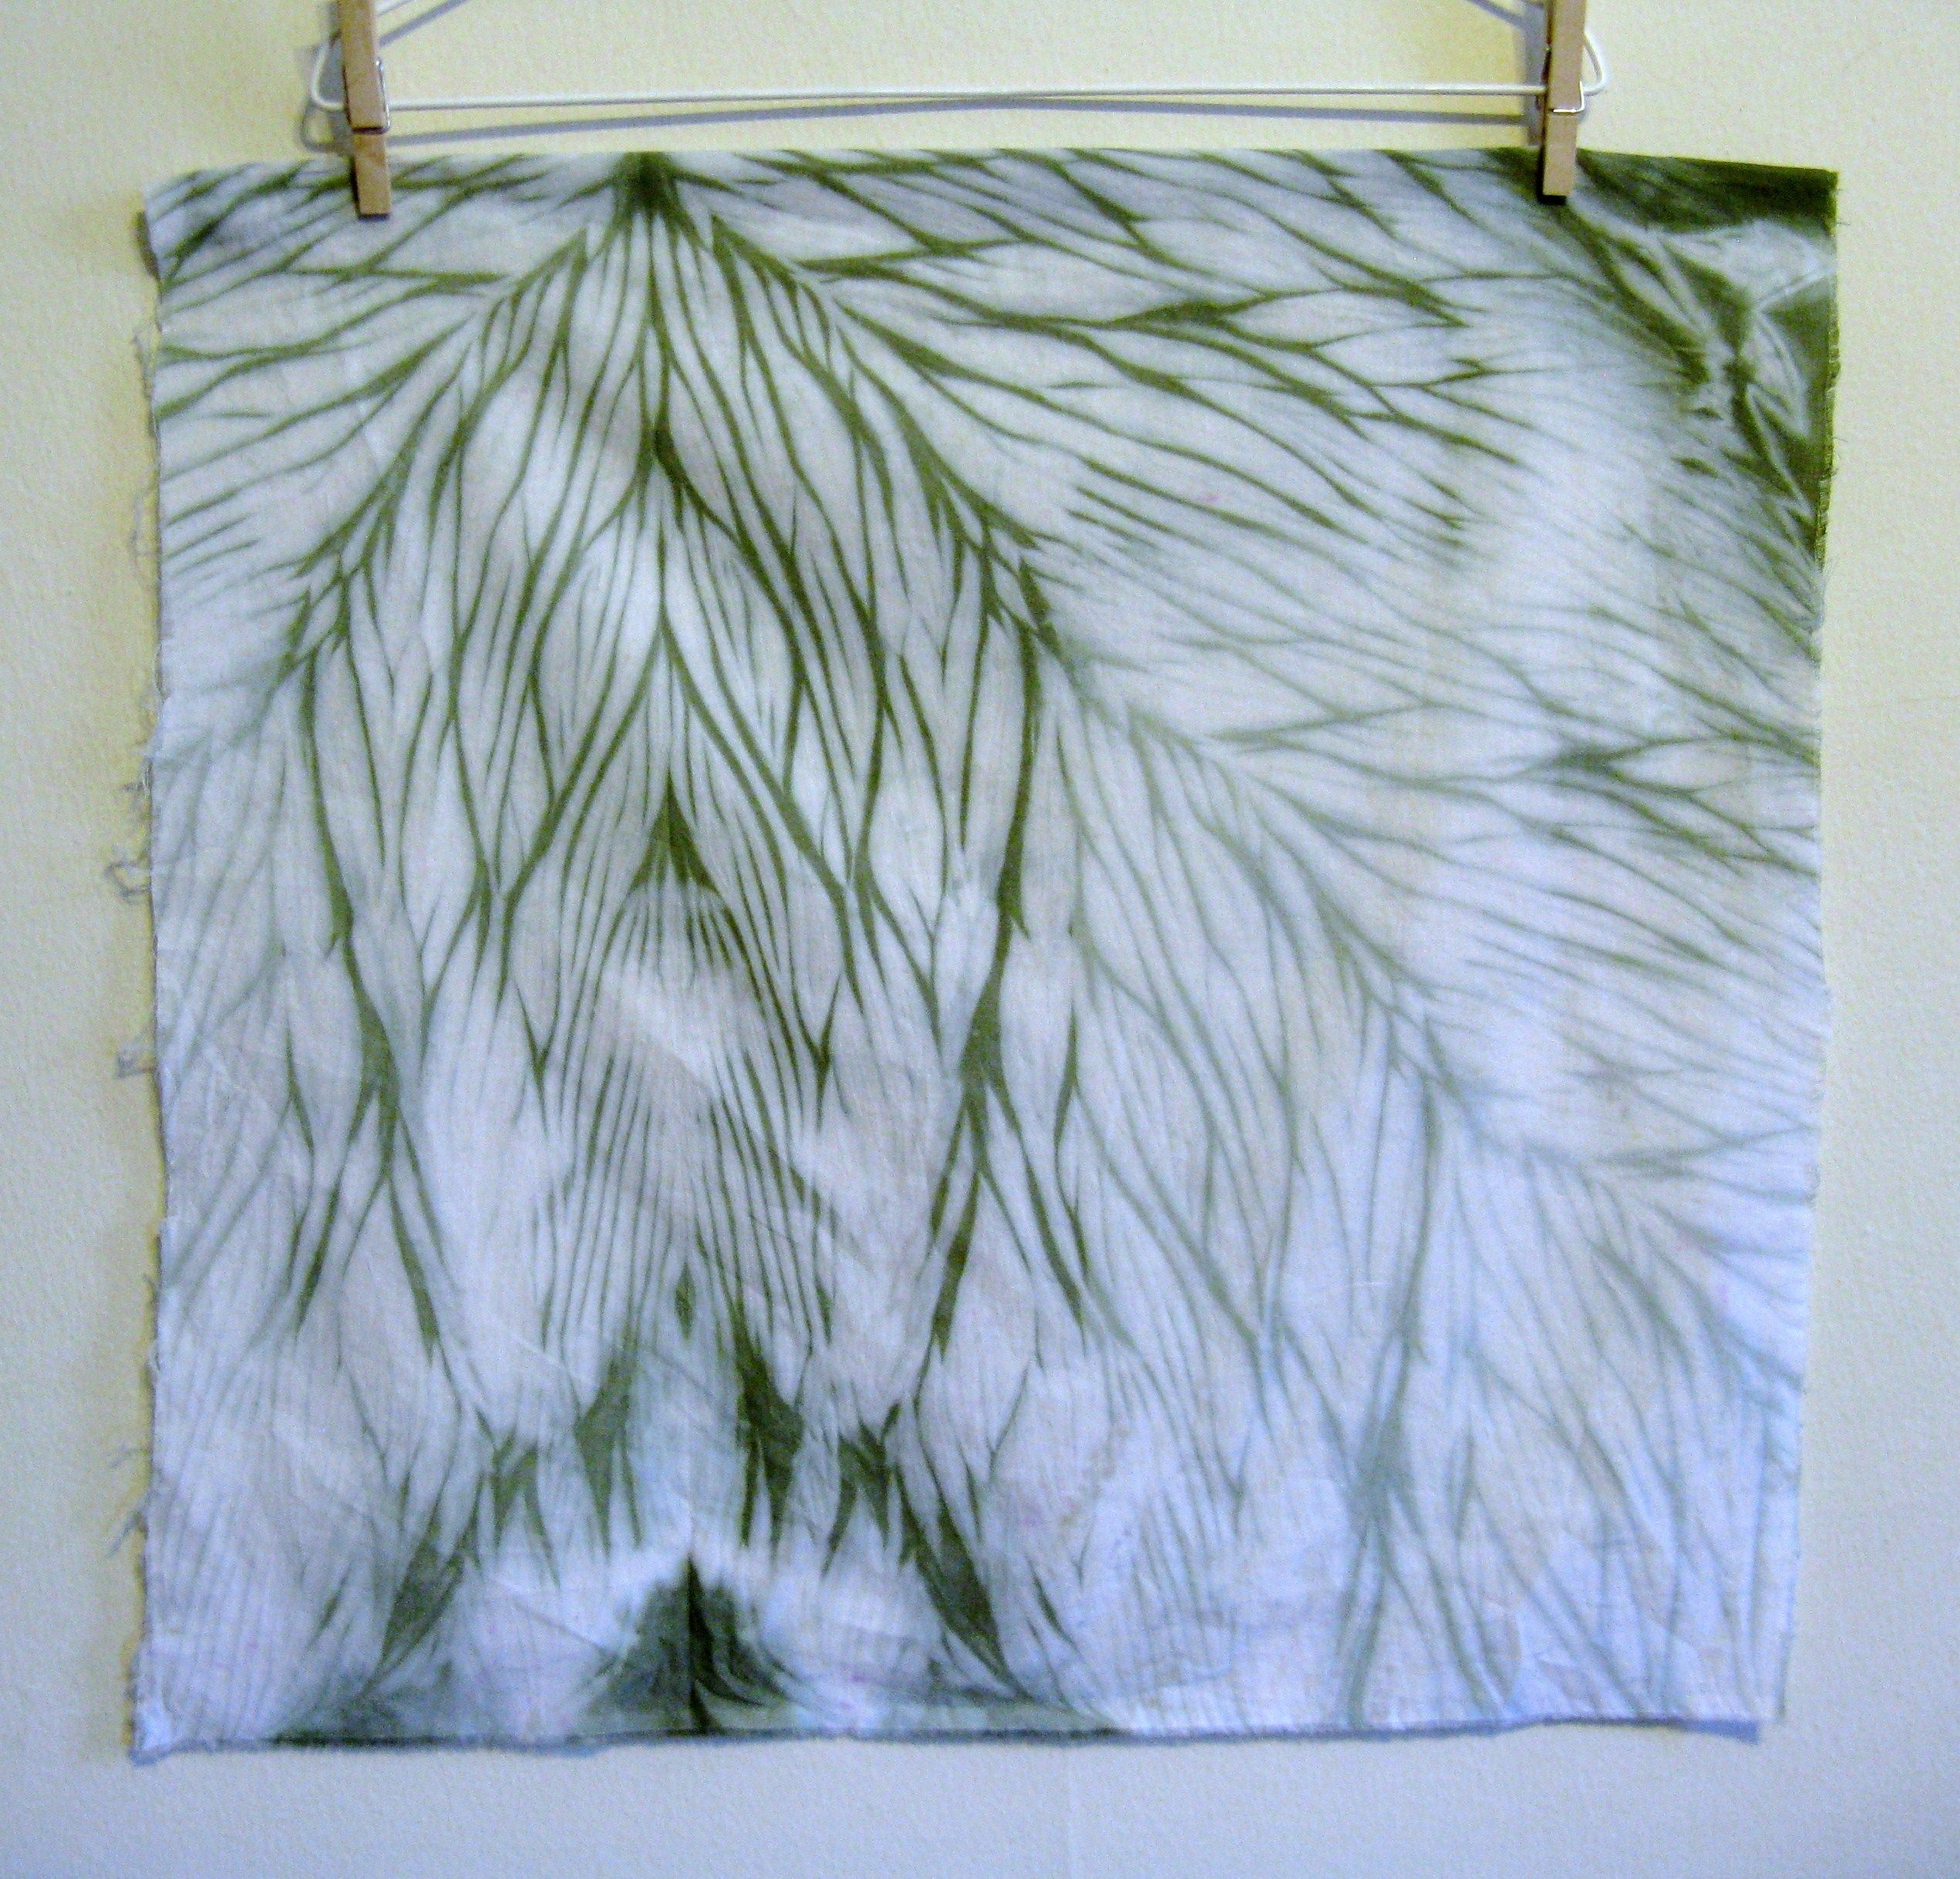 Shibori arashi 2 knudsen blog 2011 shibori pinterest shibori blog and fabric dye - Technique tie and dye ...